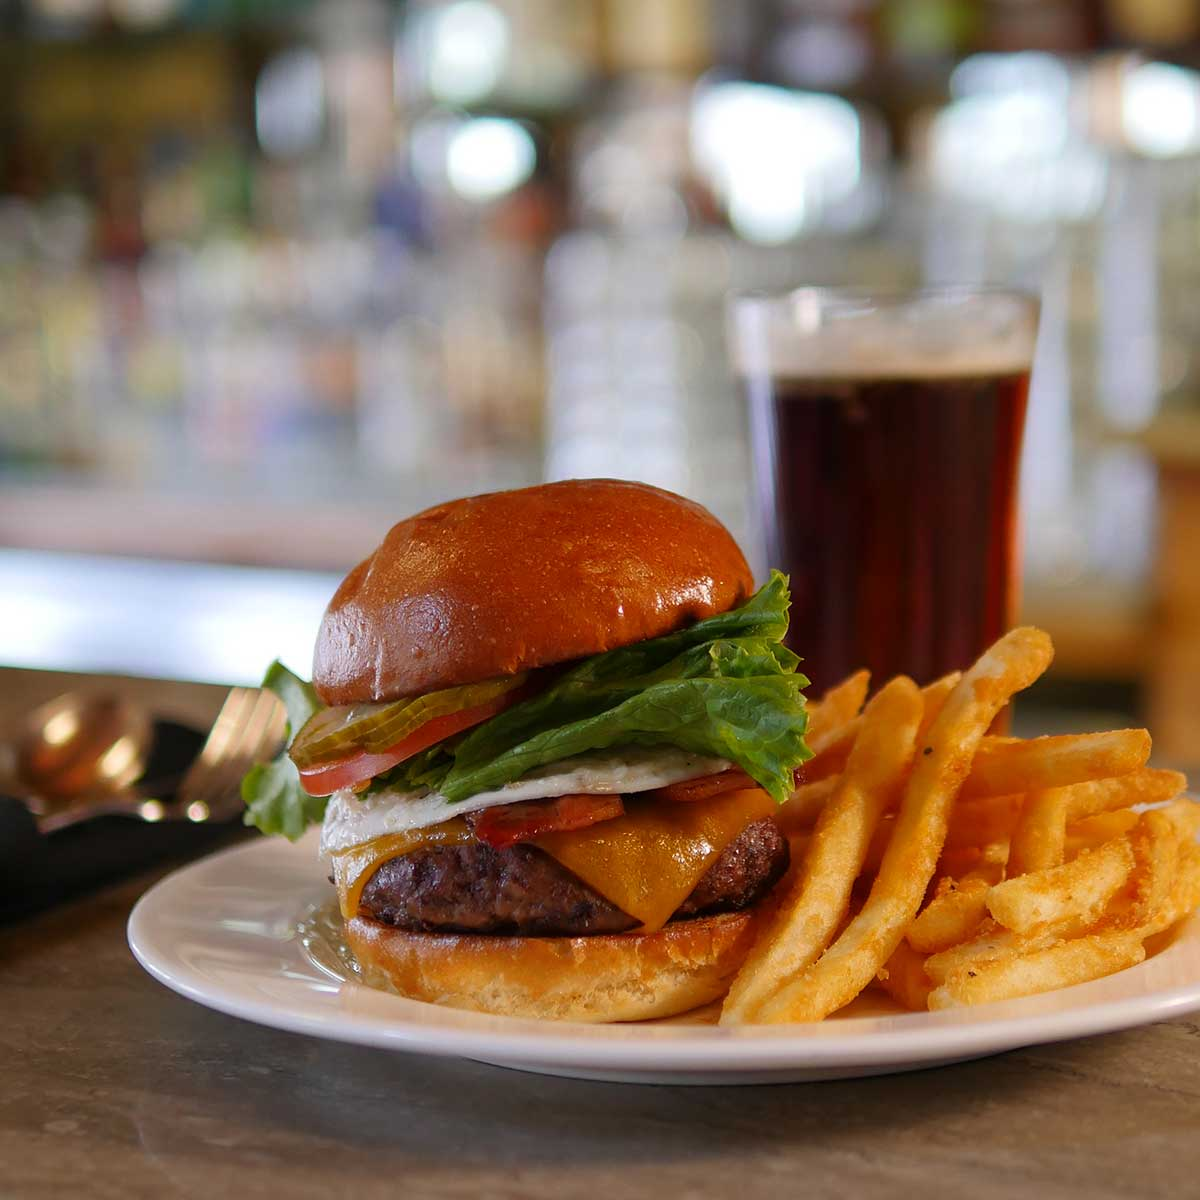 Timbers burger with fries and dark beer